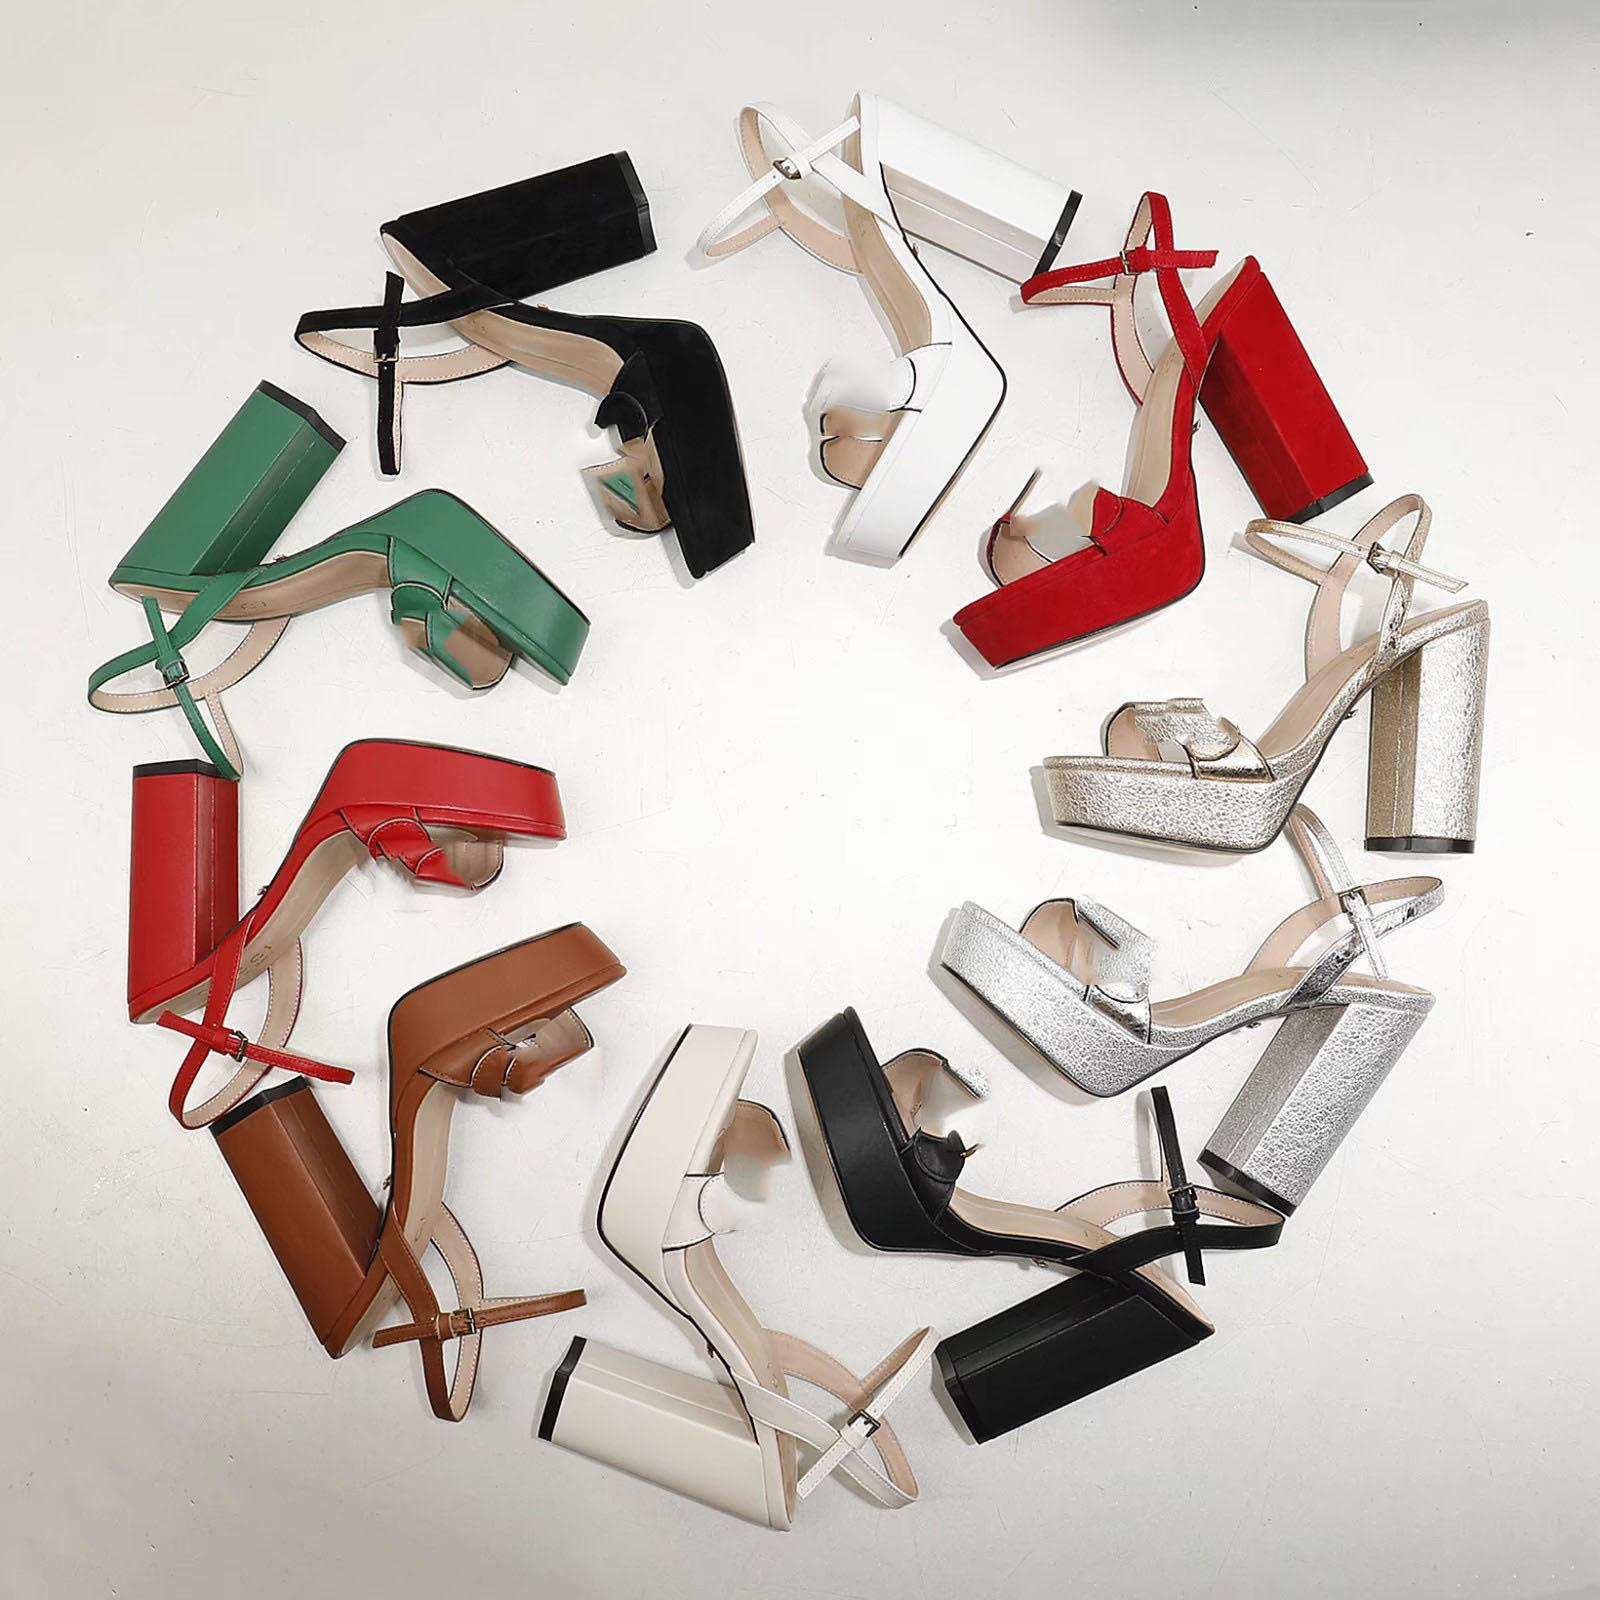 2020 New Designer High Talons Sandals Mode Femme Cuir Noir Chunky Heel Plateforme Chaussures Chaussures Filles En plein air Sexy Pompes Sude Grande taille 9 # G10